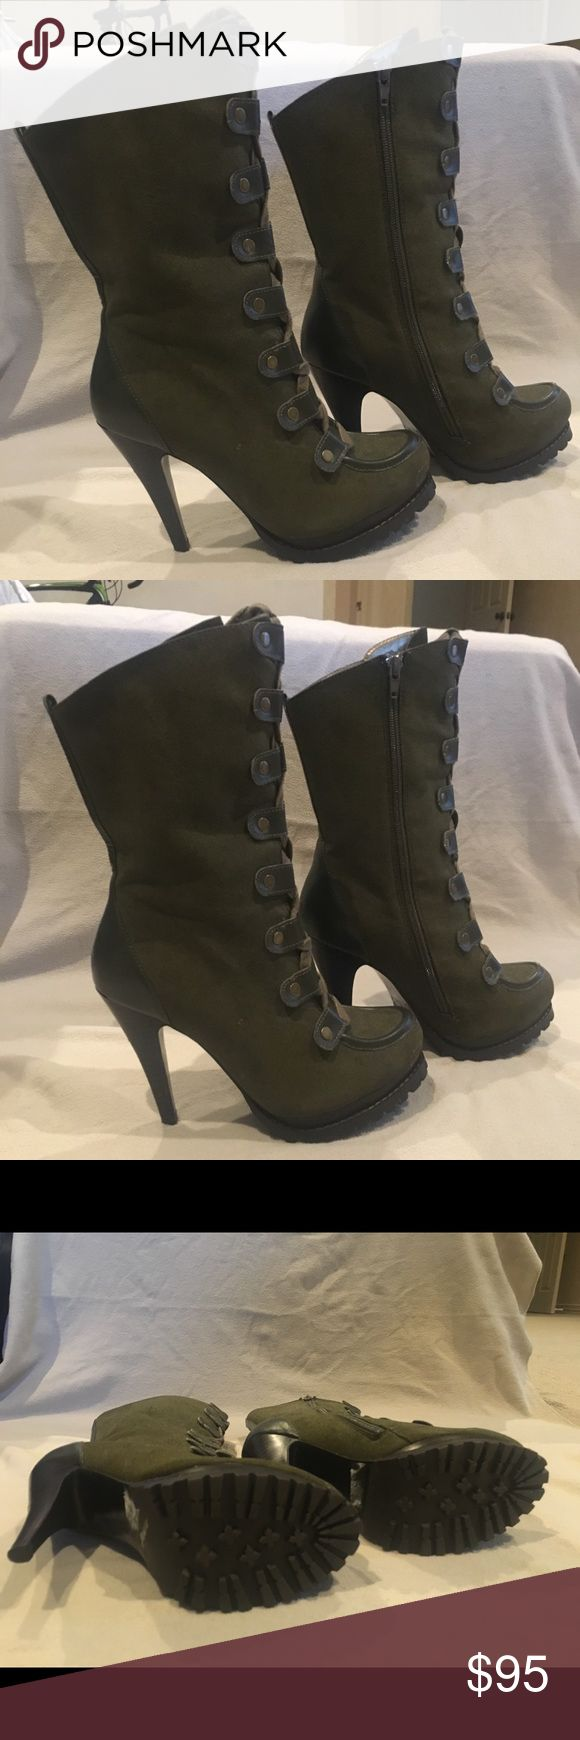 "Charles David Boots Charles David mid-calf Boots; Khakhi green; size 7.  4.25"" heel with 1/2"" platform   In one word, I've got to say they are 'STUNNING'!!! Can't walk in such high heels so I have to let them go! 😢 Charles David Shoes Heeled Boots"